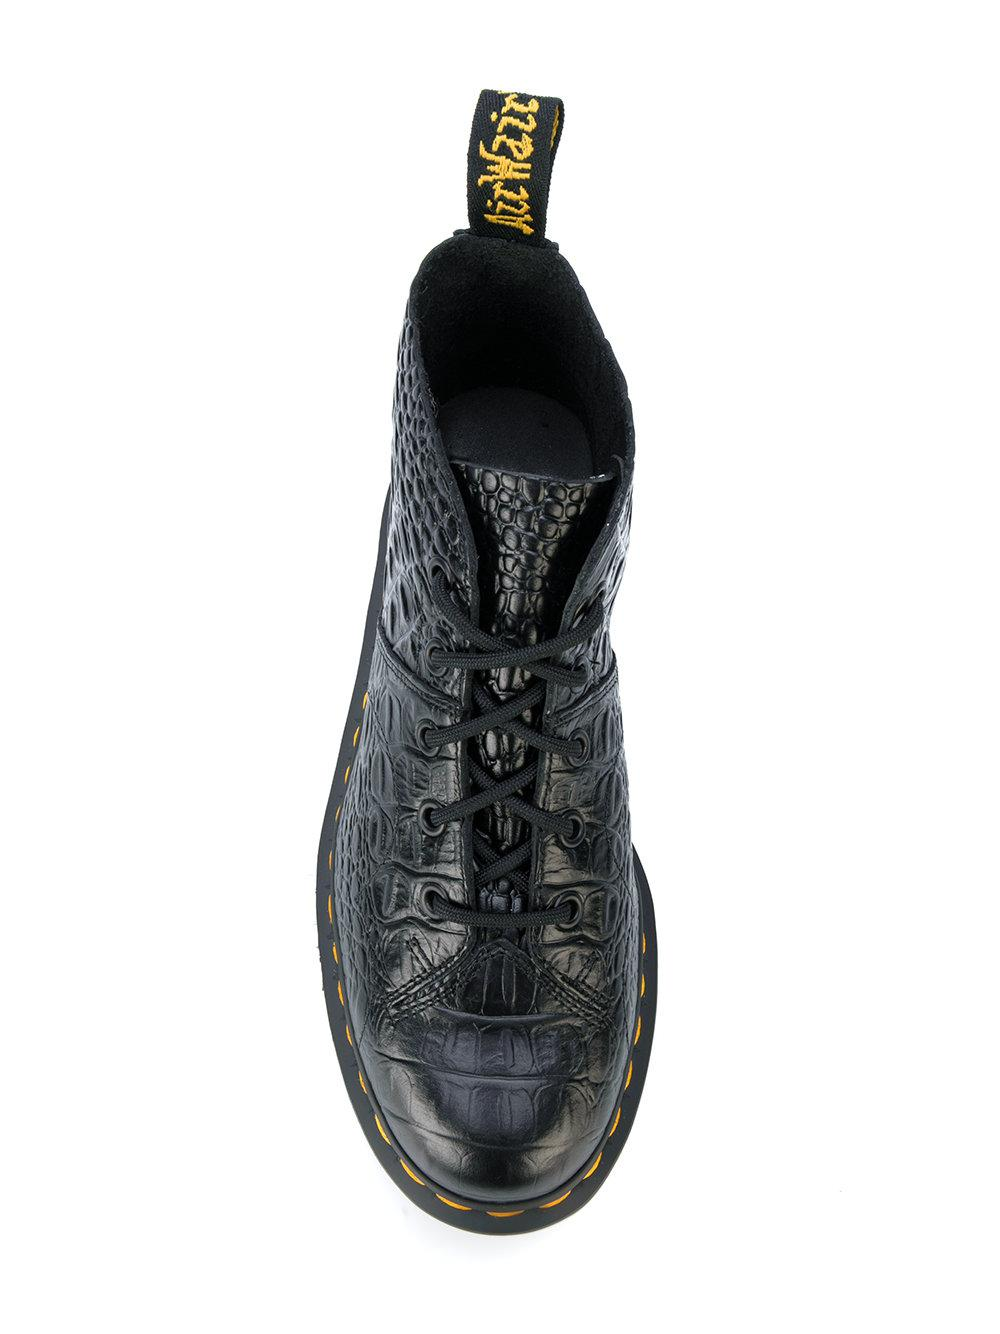 Dr Martens Crocodile Effect Boots In Black Lyst